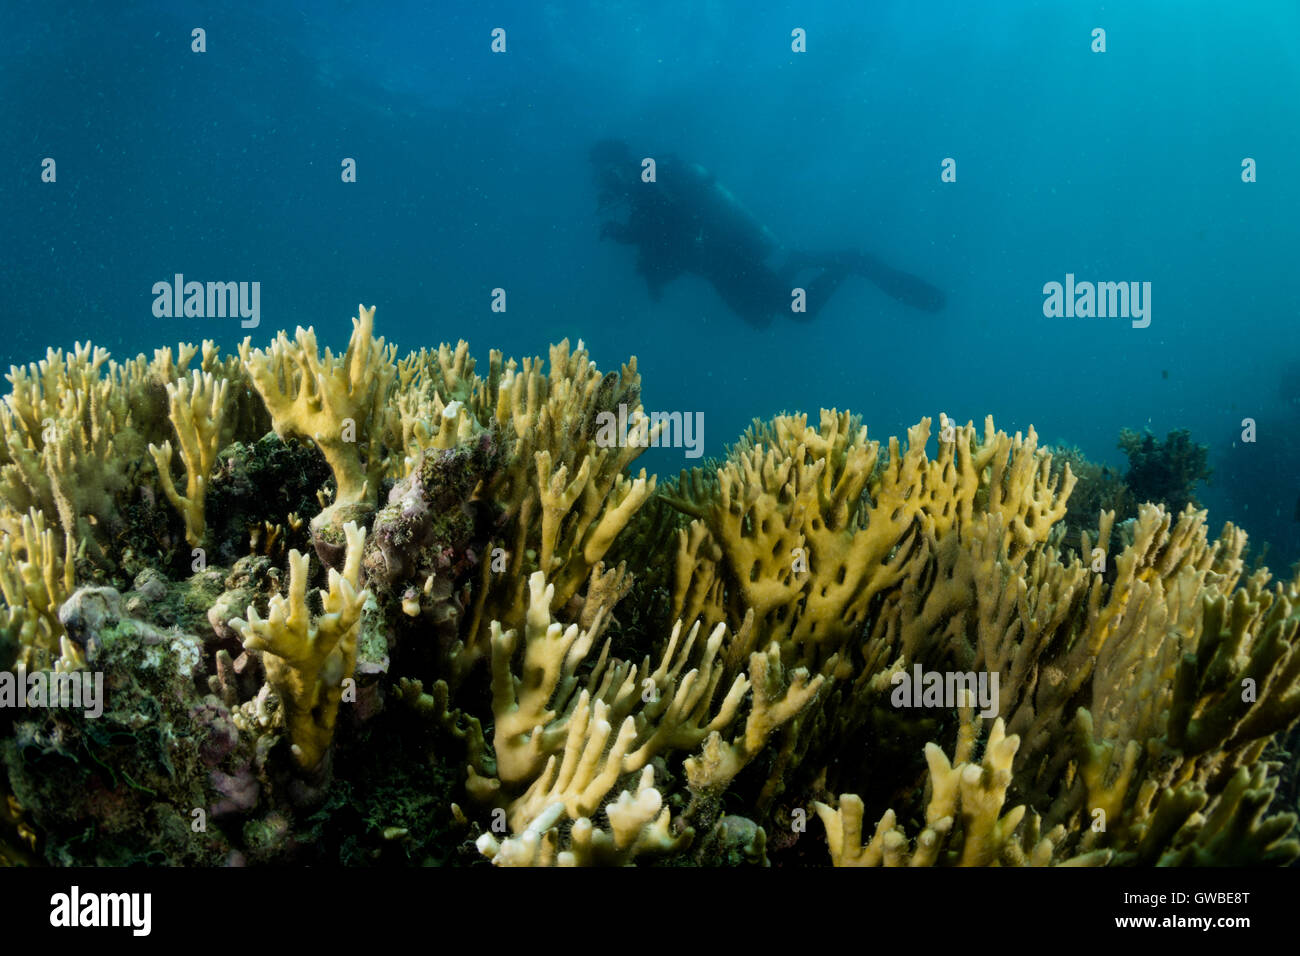 scuba diver close to coral reef, Abrolhos marine National Park, Bahia state, Brazil - Stock Image